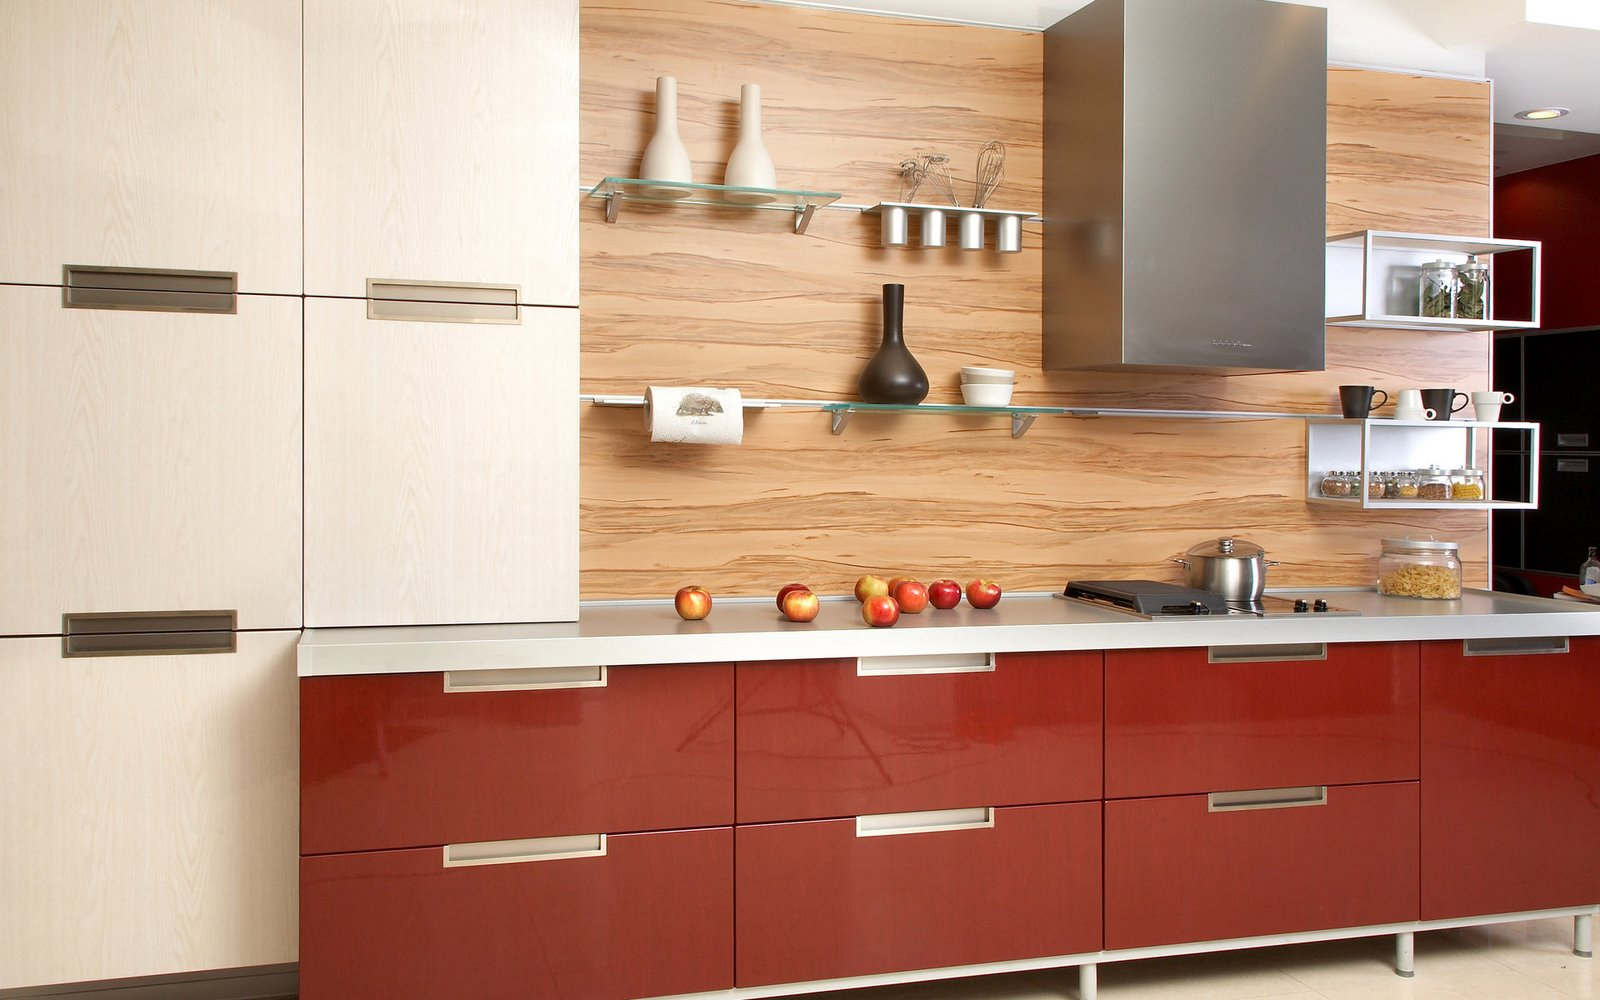 Contemporary Kitchen Backsplash Splashback Modern Wood Design Dream Kitchens Pinterest